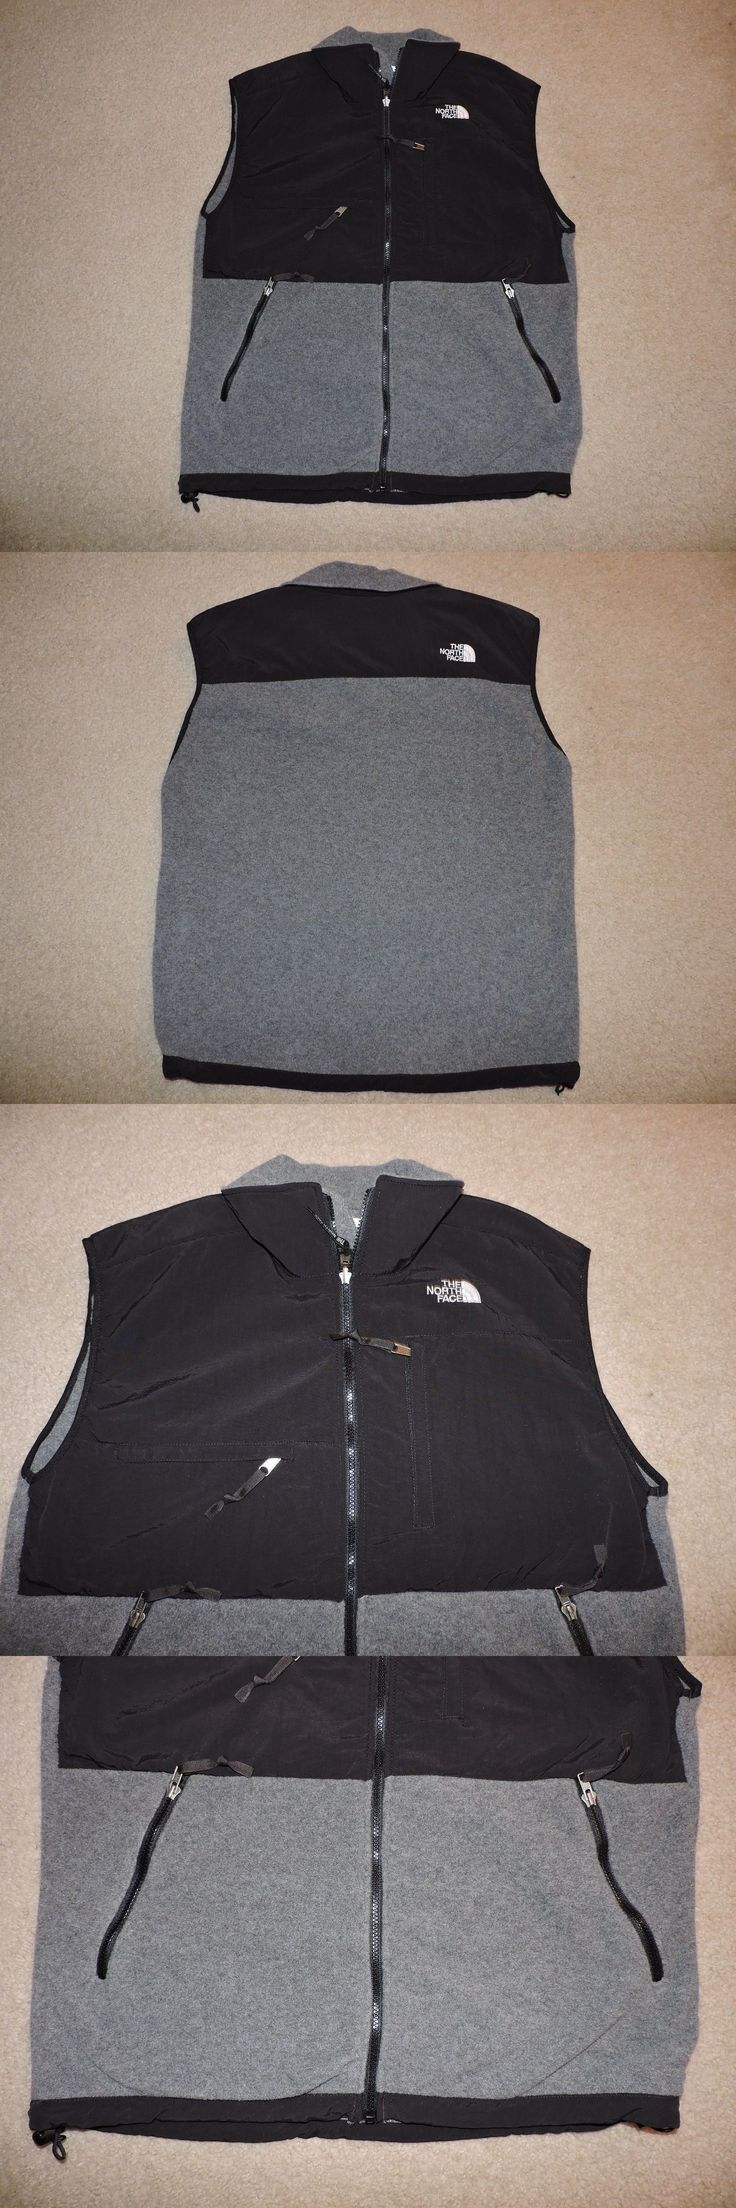 Vests 179012: Womens Medium The North Face Denali Fleece Vest New With Tags -> BUY IT NOW ONLY: $69.99 on eBay!